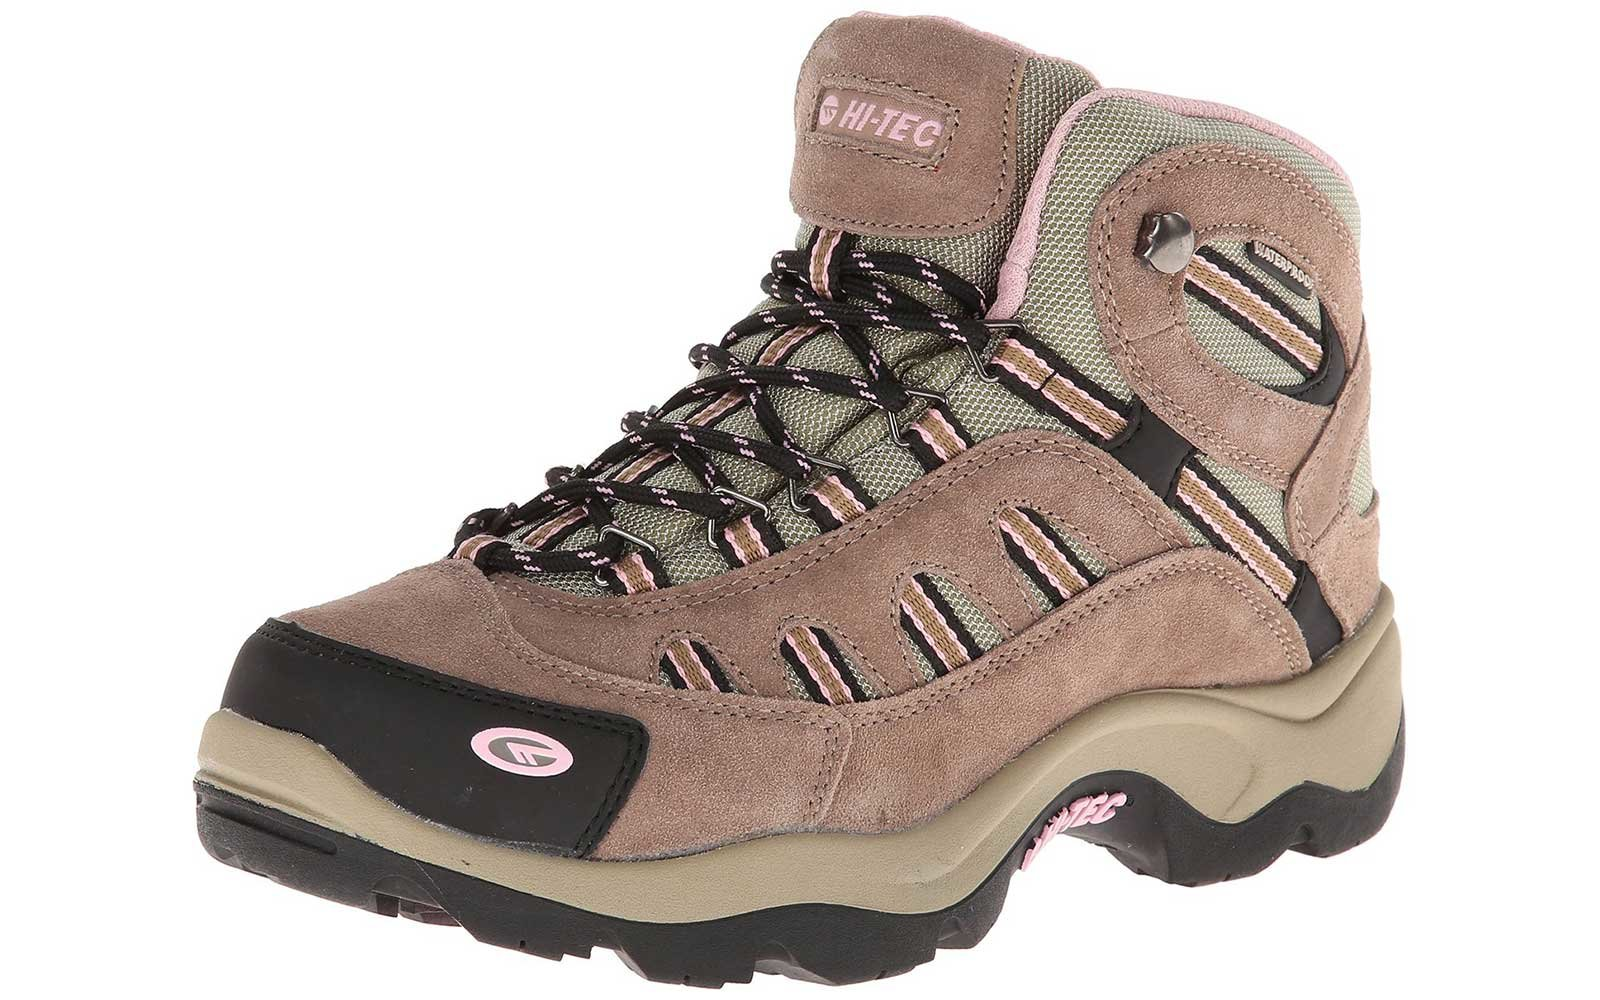 Best Hiking Shoes For Men On A Budget